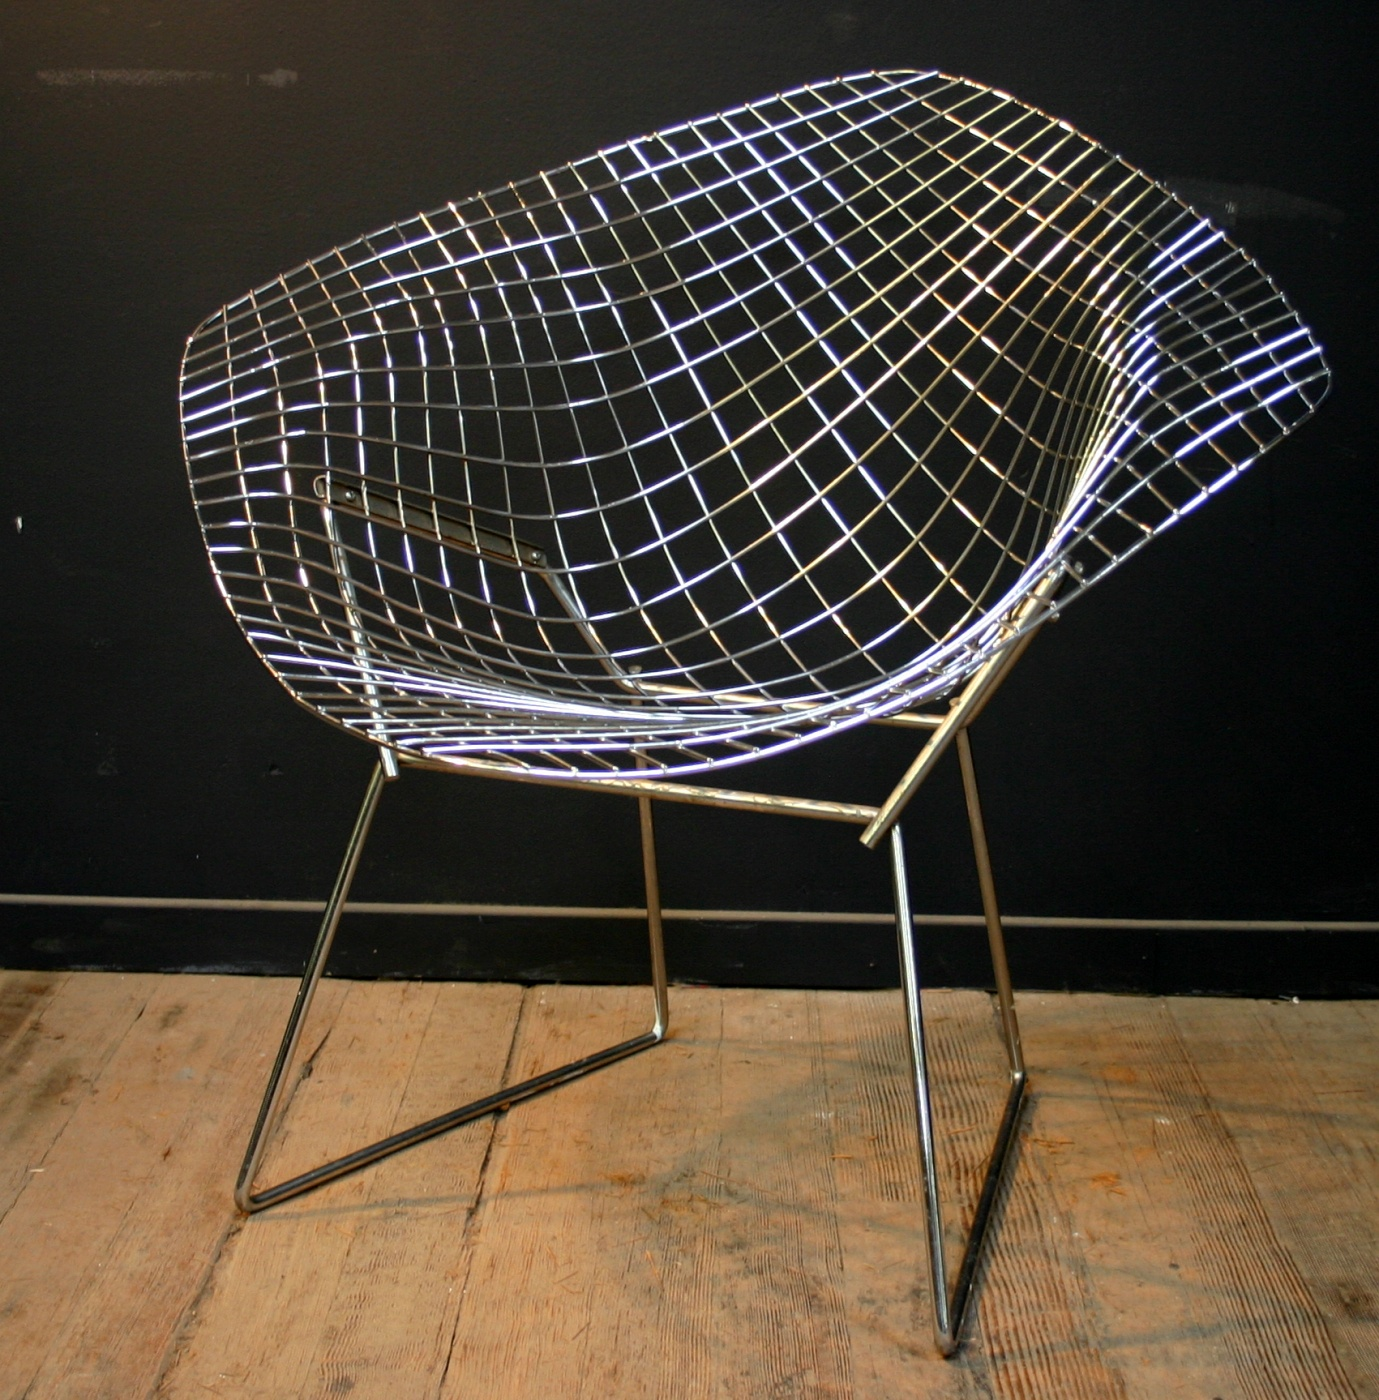 Q How do you Turn a Harry Bertoia Diamond Chair into a Lunar